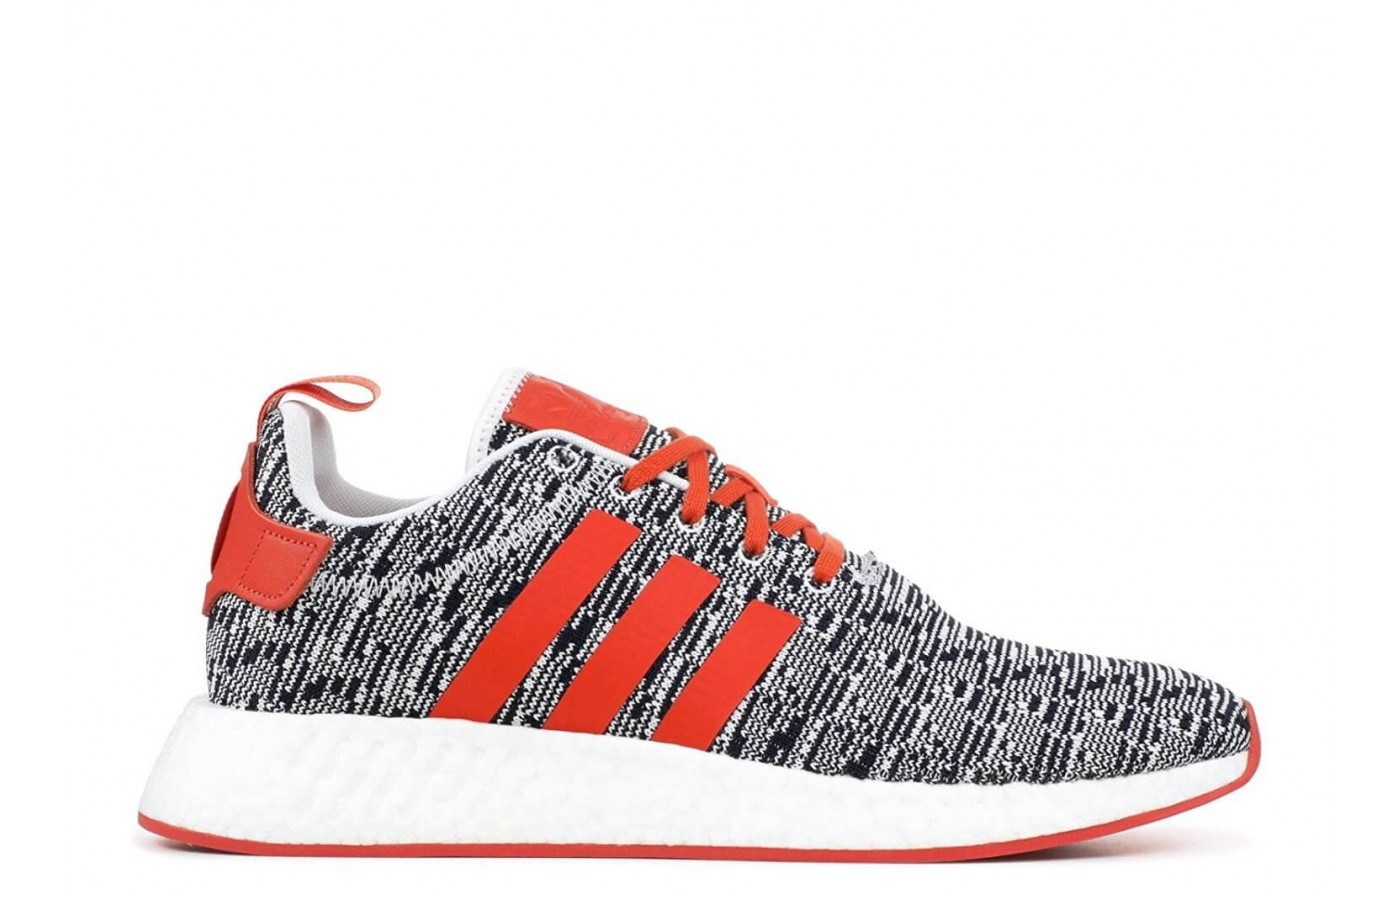 f436dddaee598 Adidas NMD R2ed for Performance and Quality - May 2019